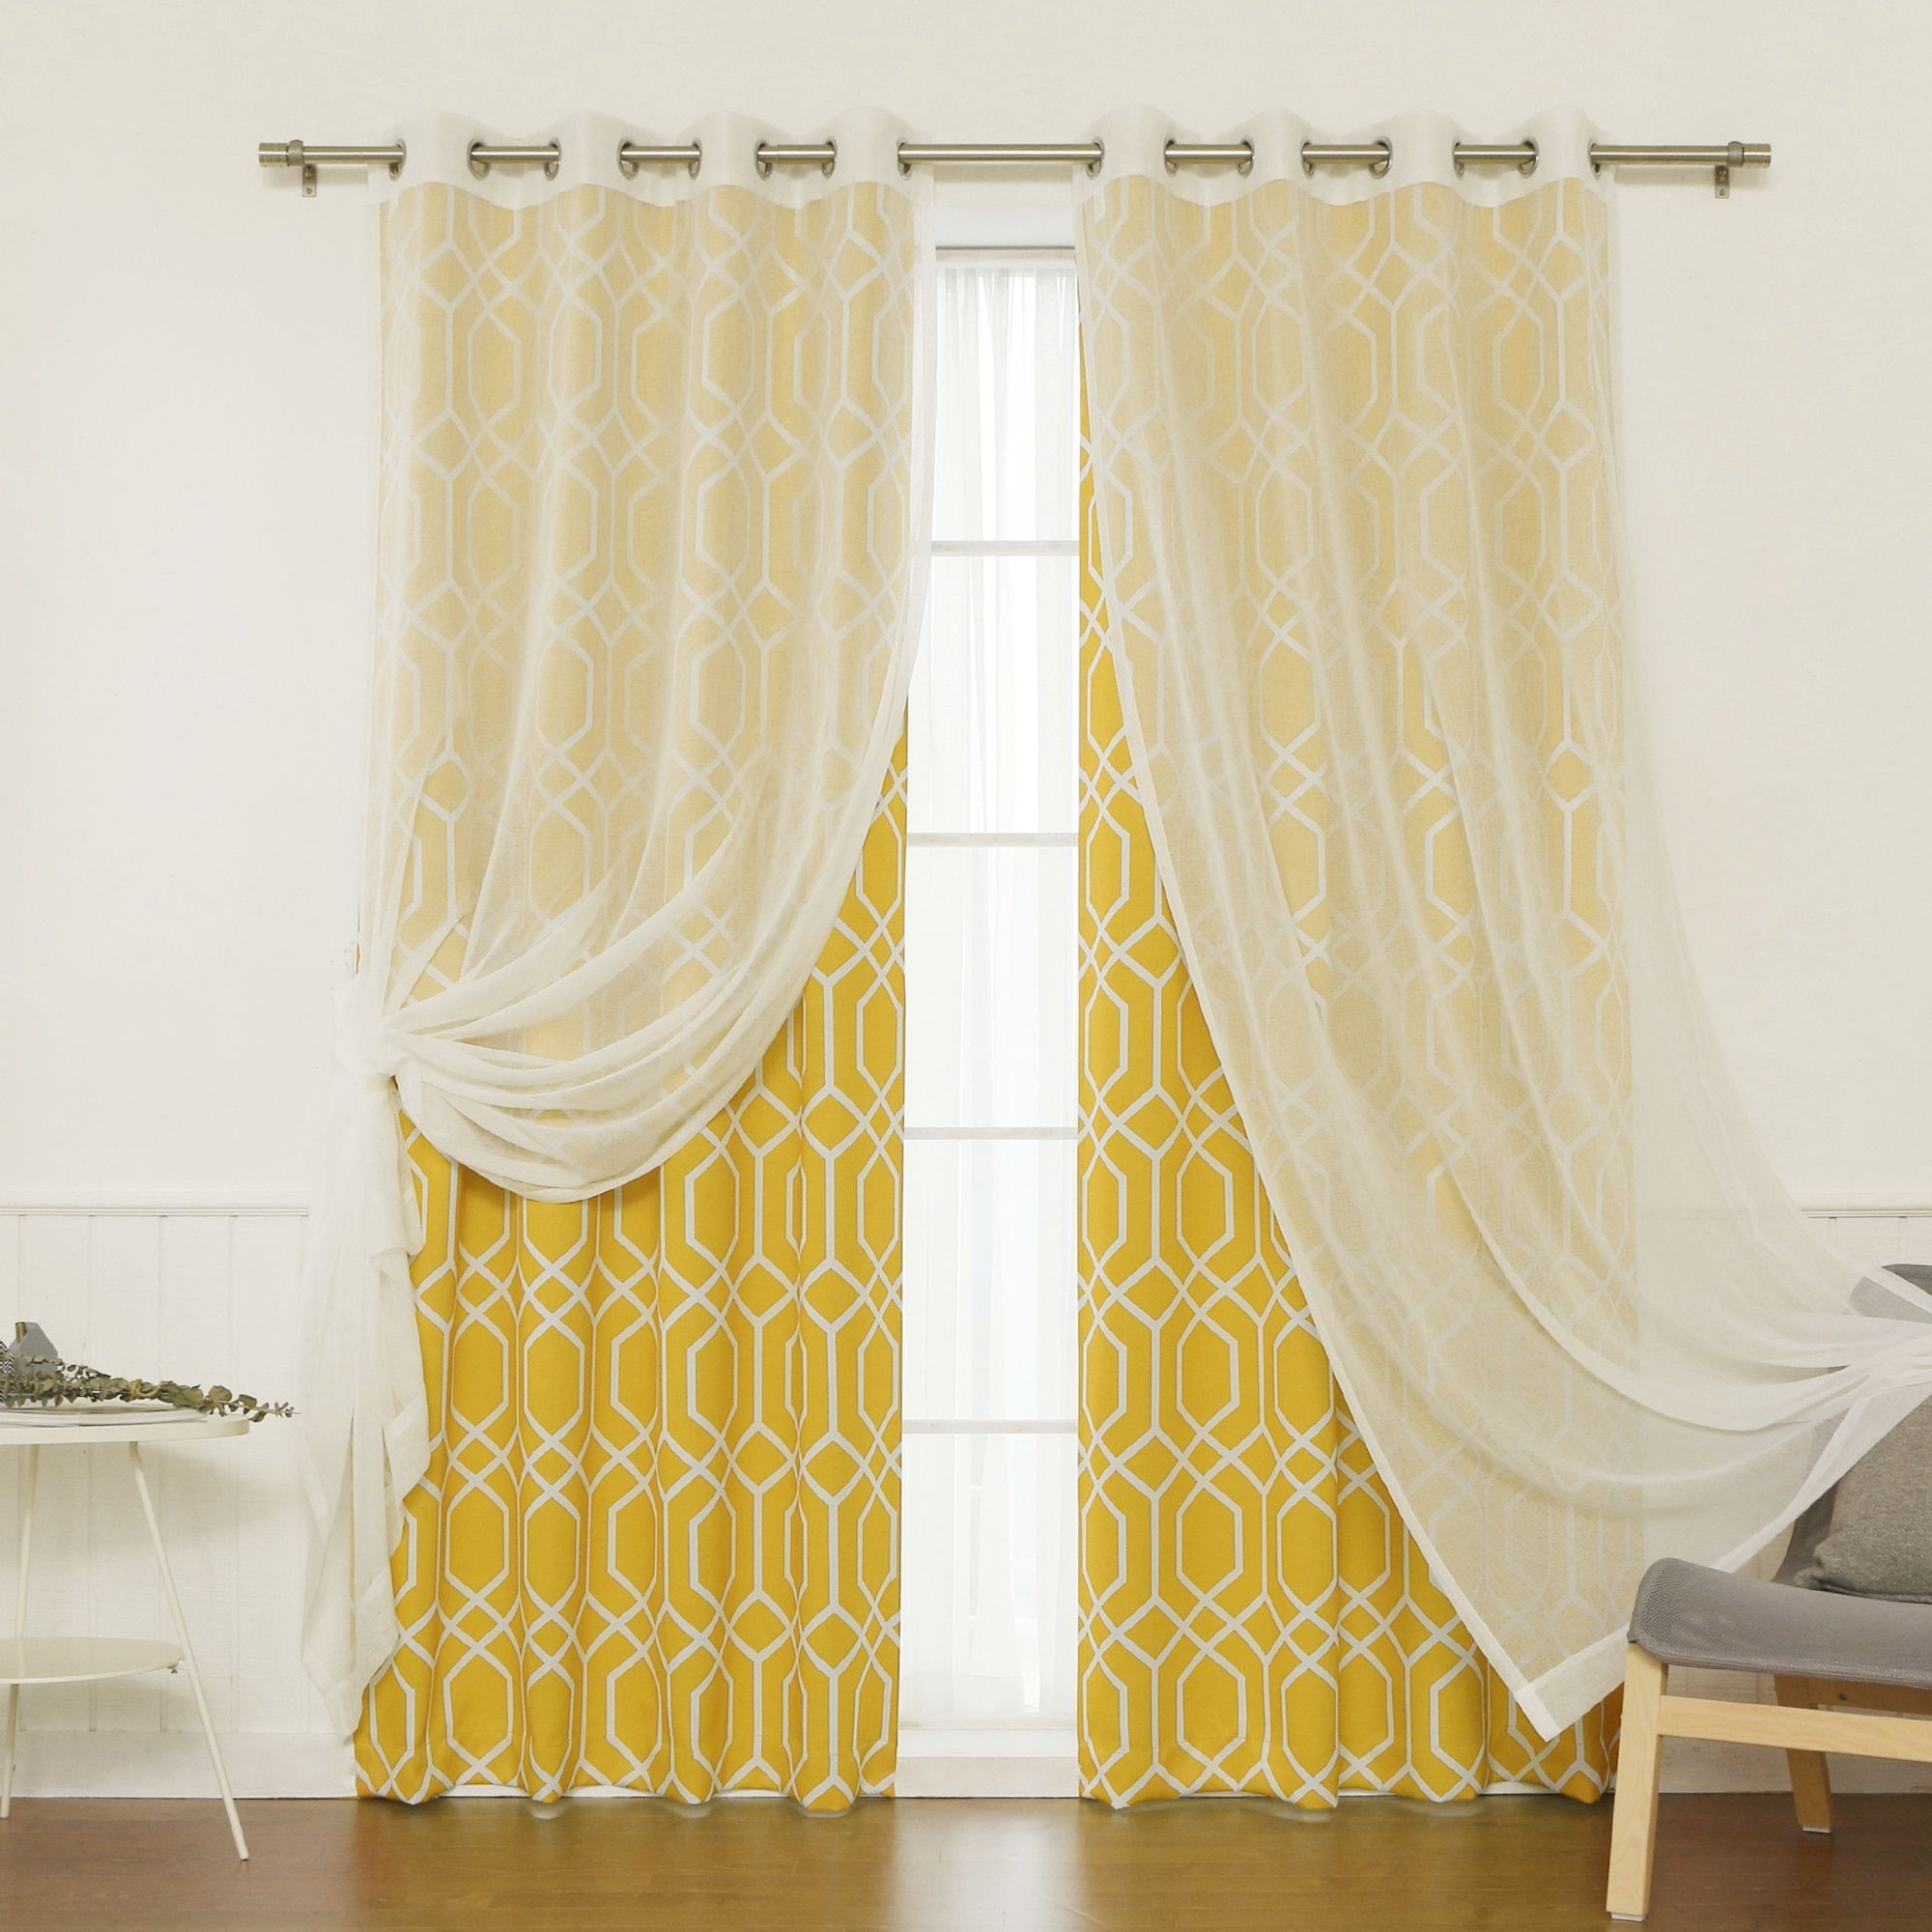 Newest Aurora Home Mix And Match Curtains Muji Sheer Geometric With Luxury Collection Monte Carlo Sheer Curtain Panel Pairs (View 12 of 20)